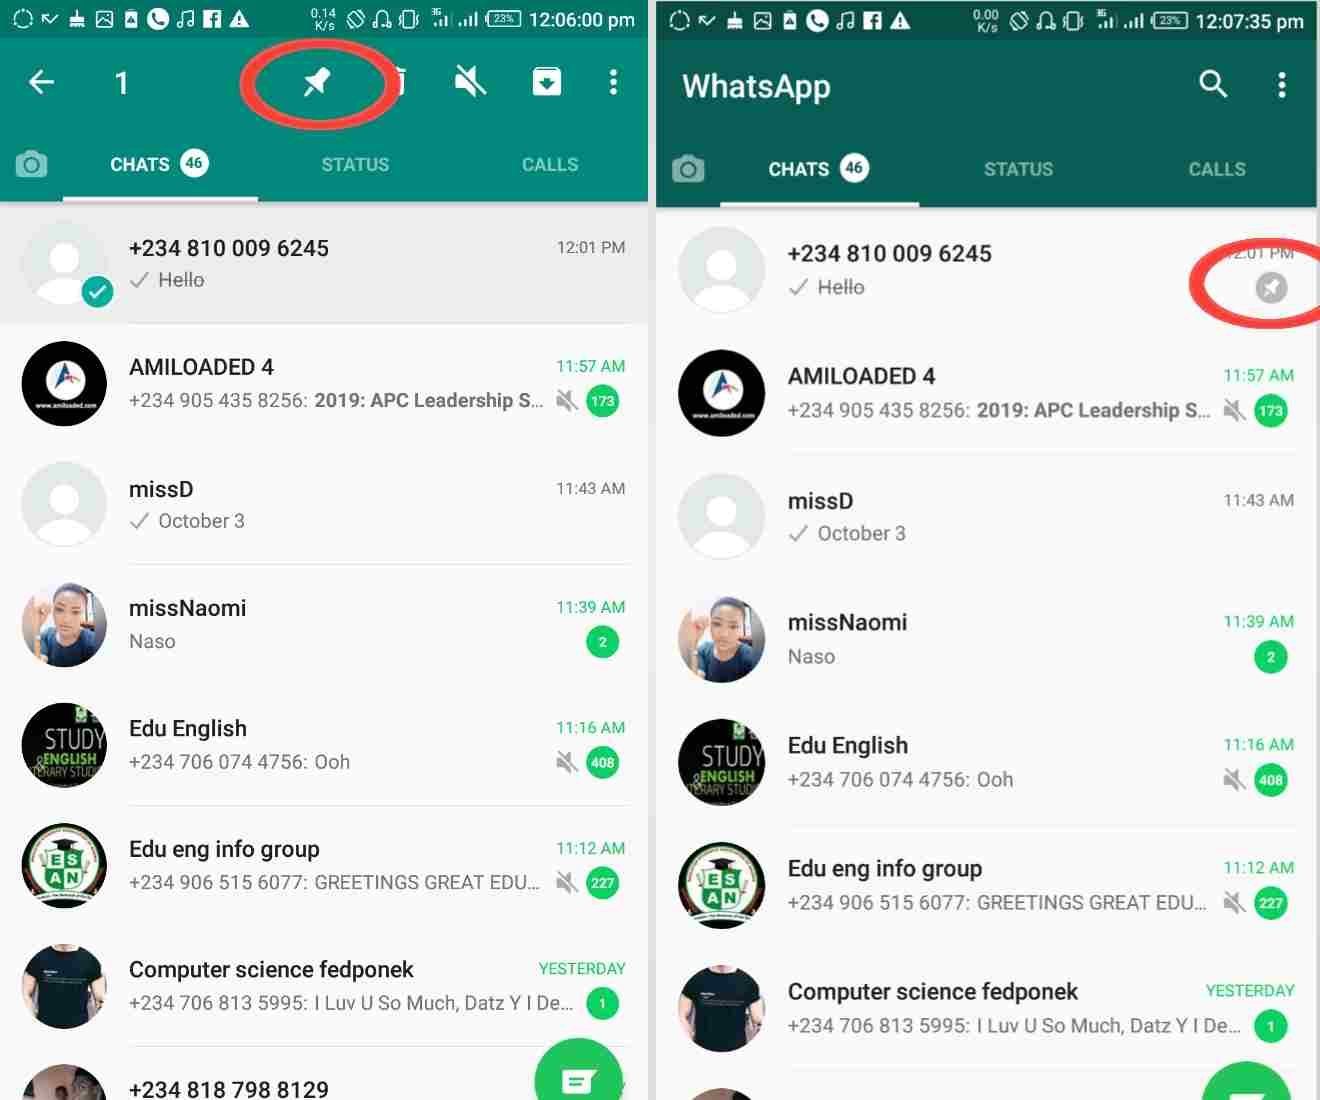 how to pin a contact to the top of whatsapp list